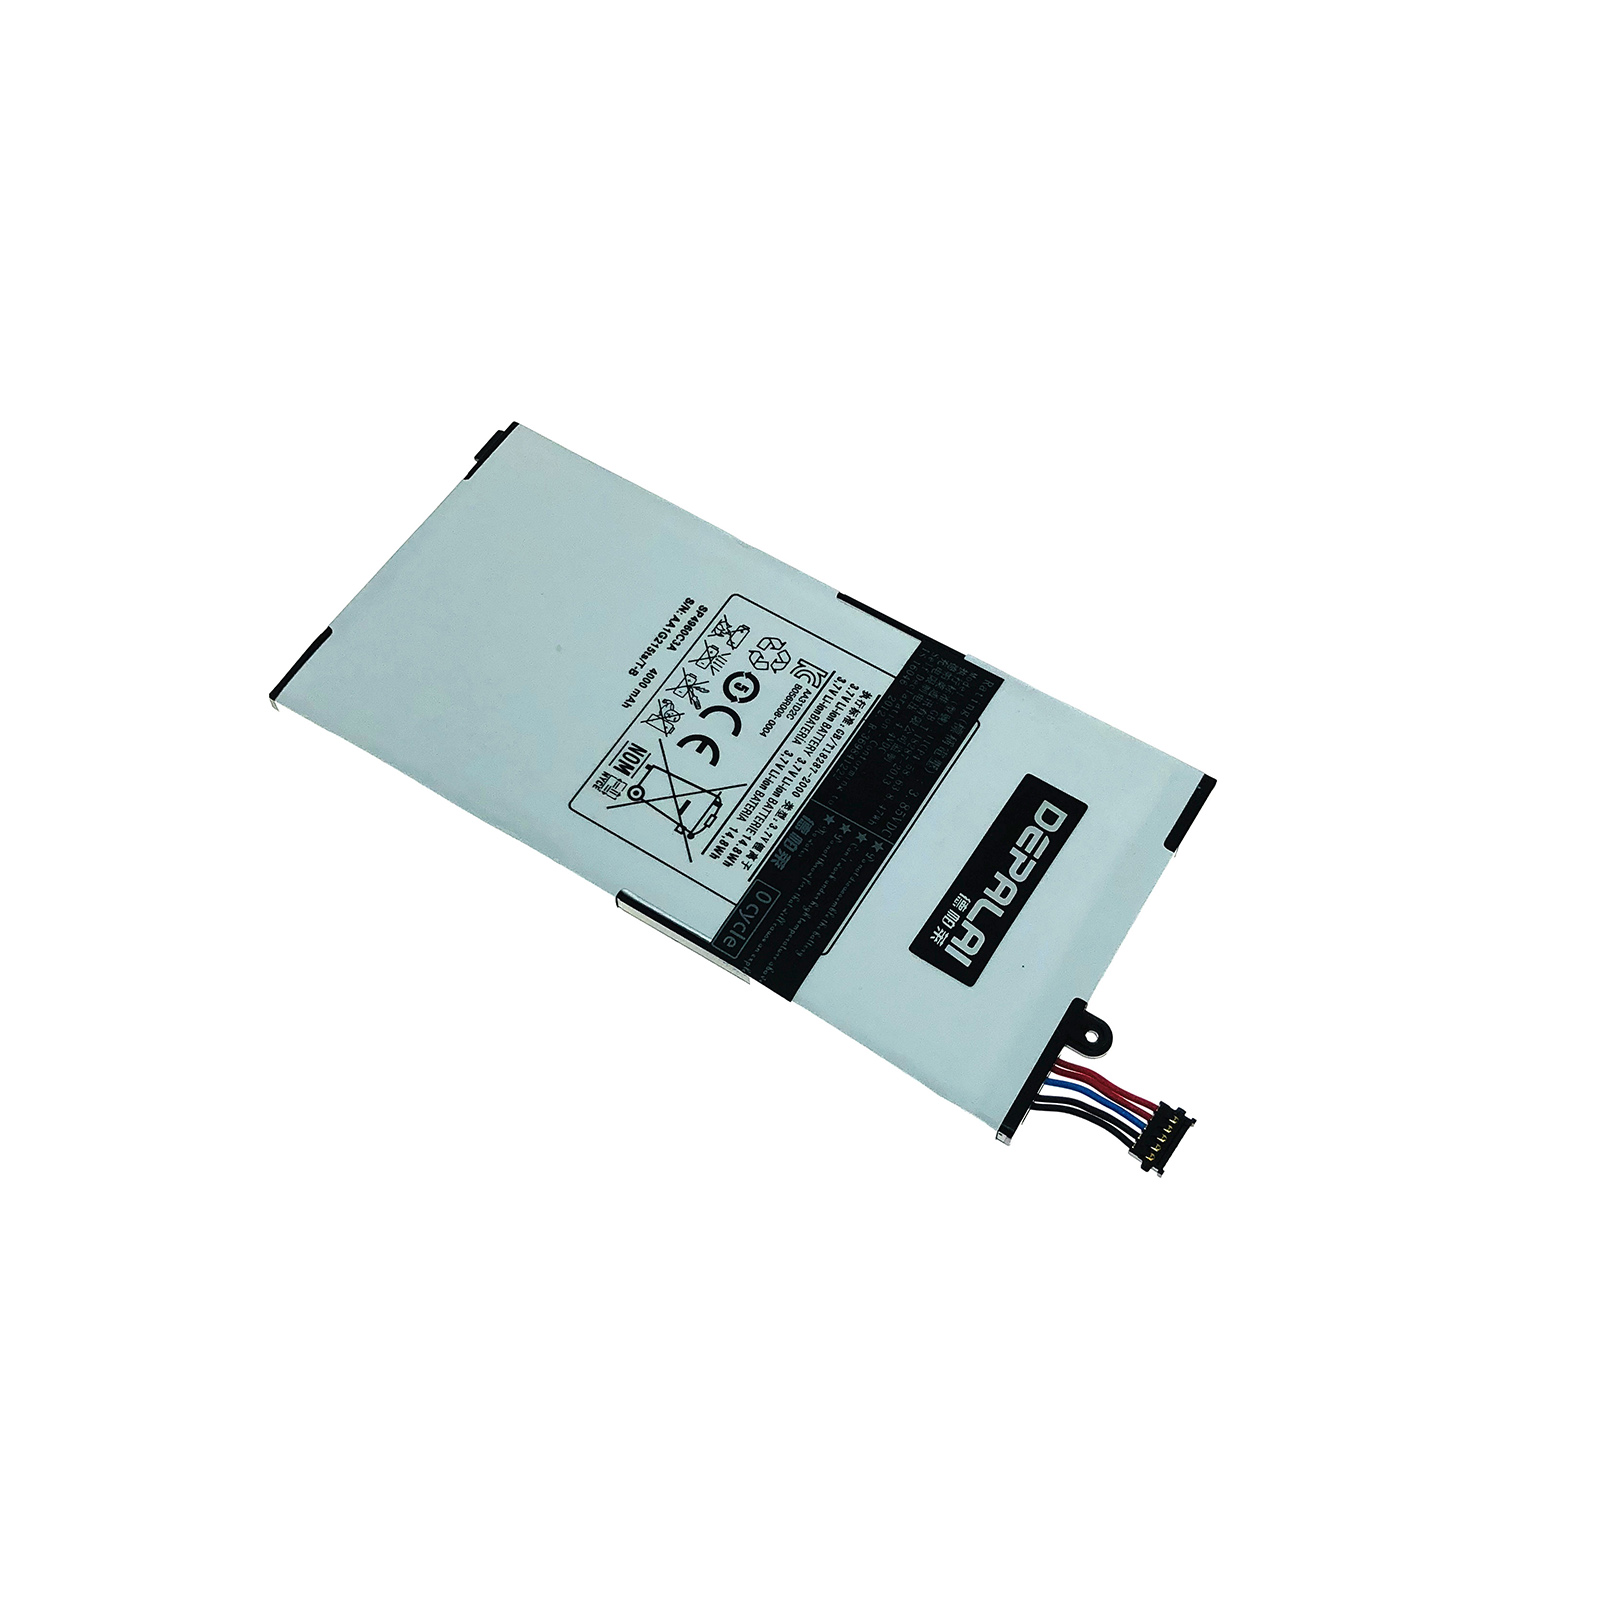 New Tablet Battery SP4960C3A For Samsung <font><b>Galaxy</b></font> <font><b>Tab</b></font> 7.0 7